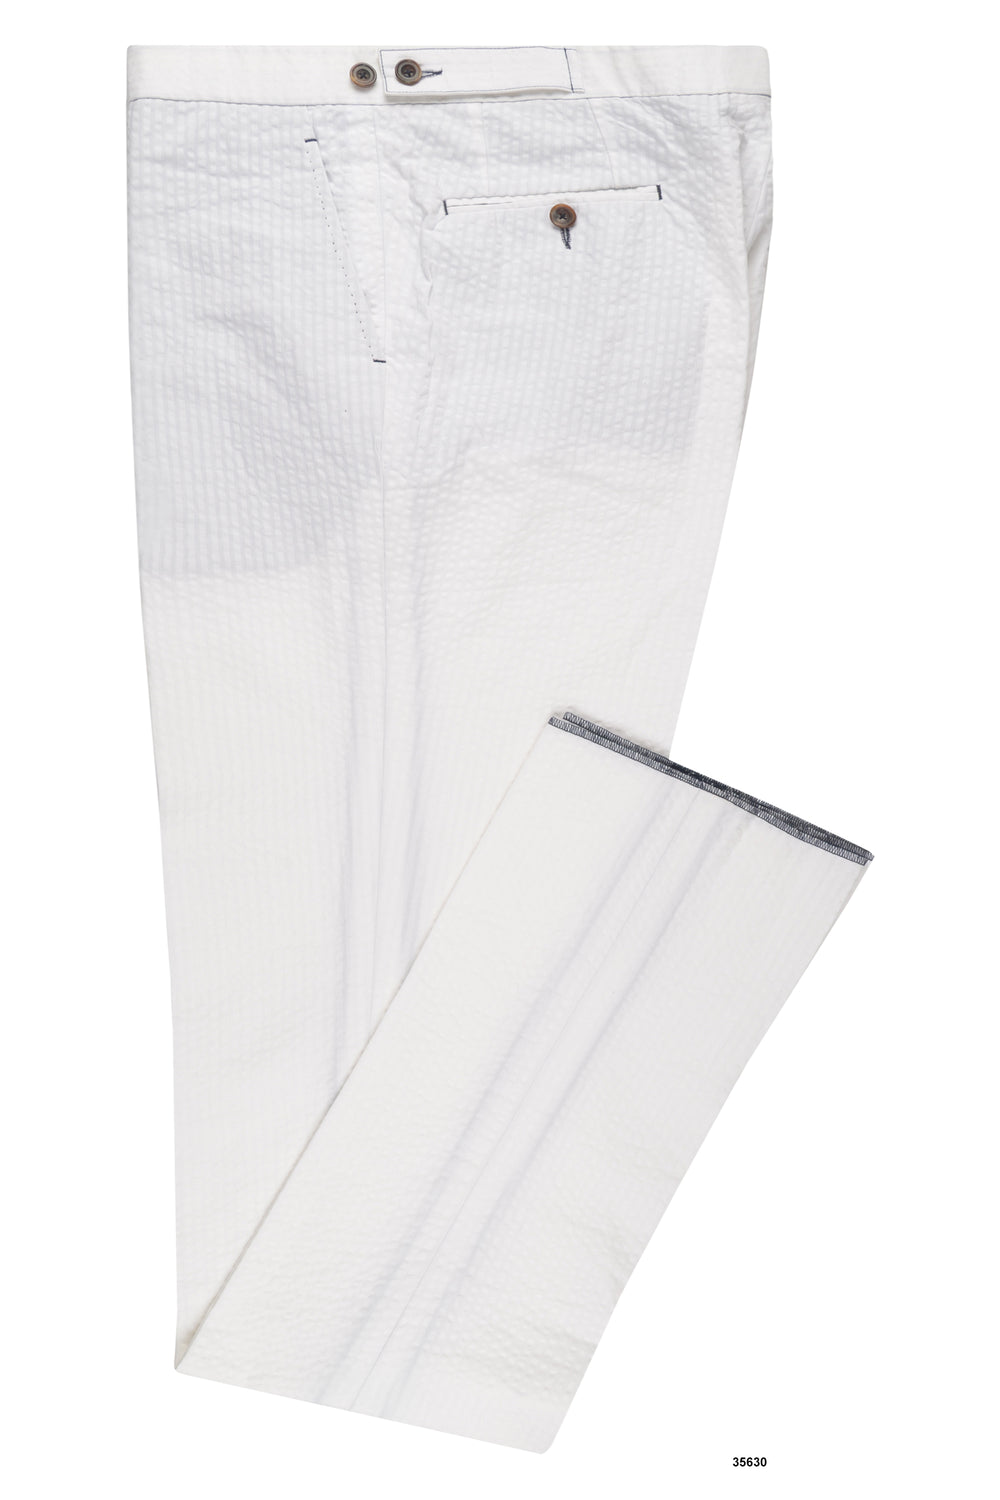 White Seersucker Summer Pants (105046343688)